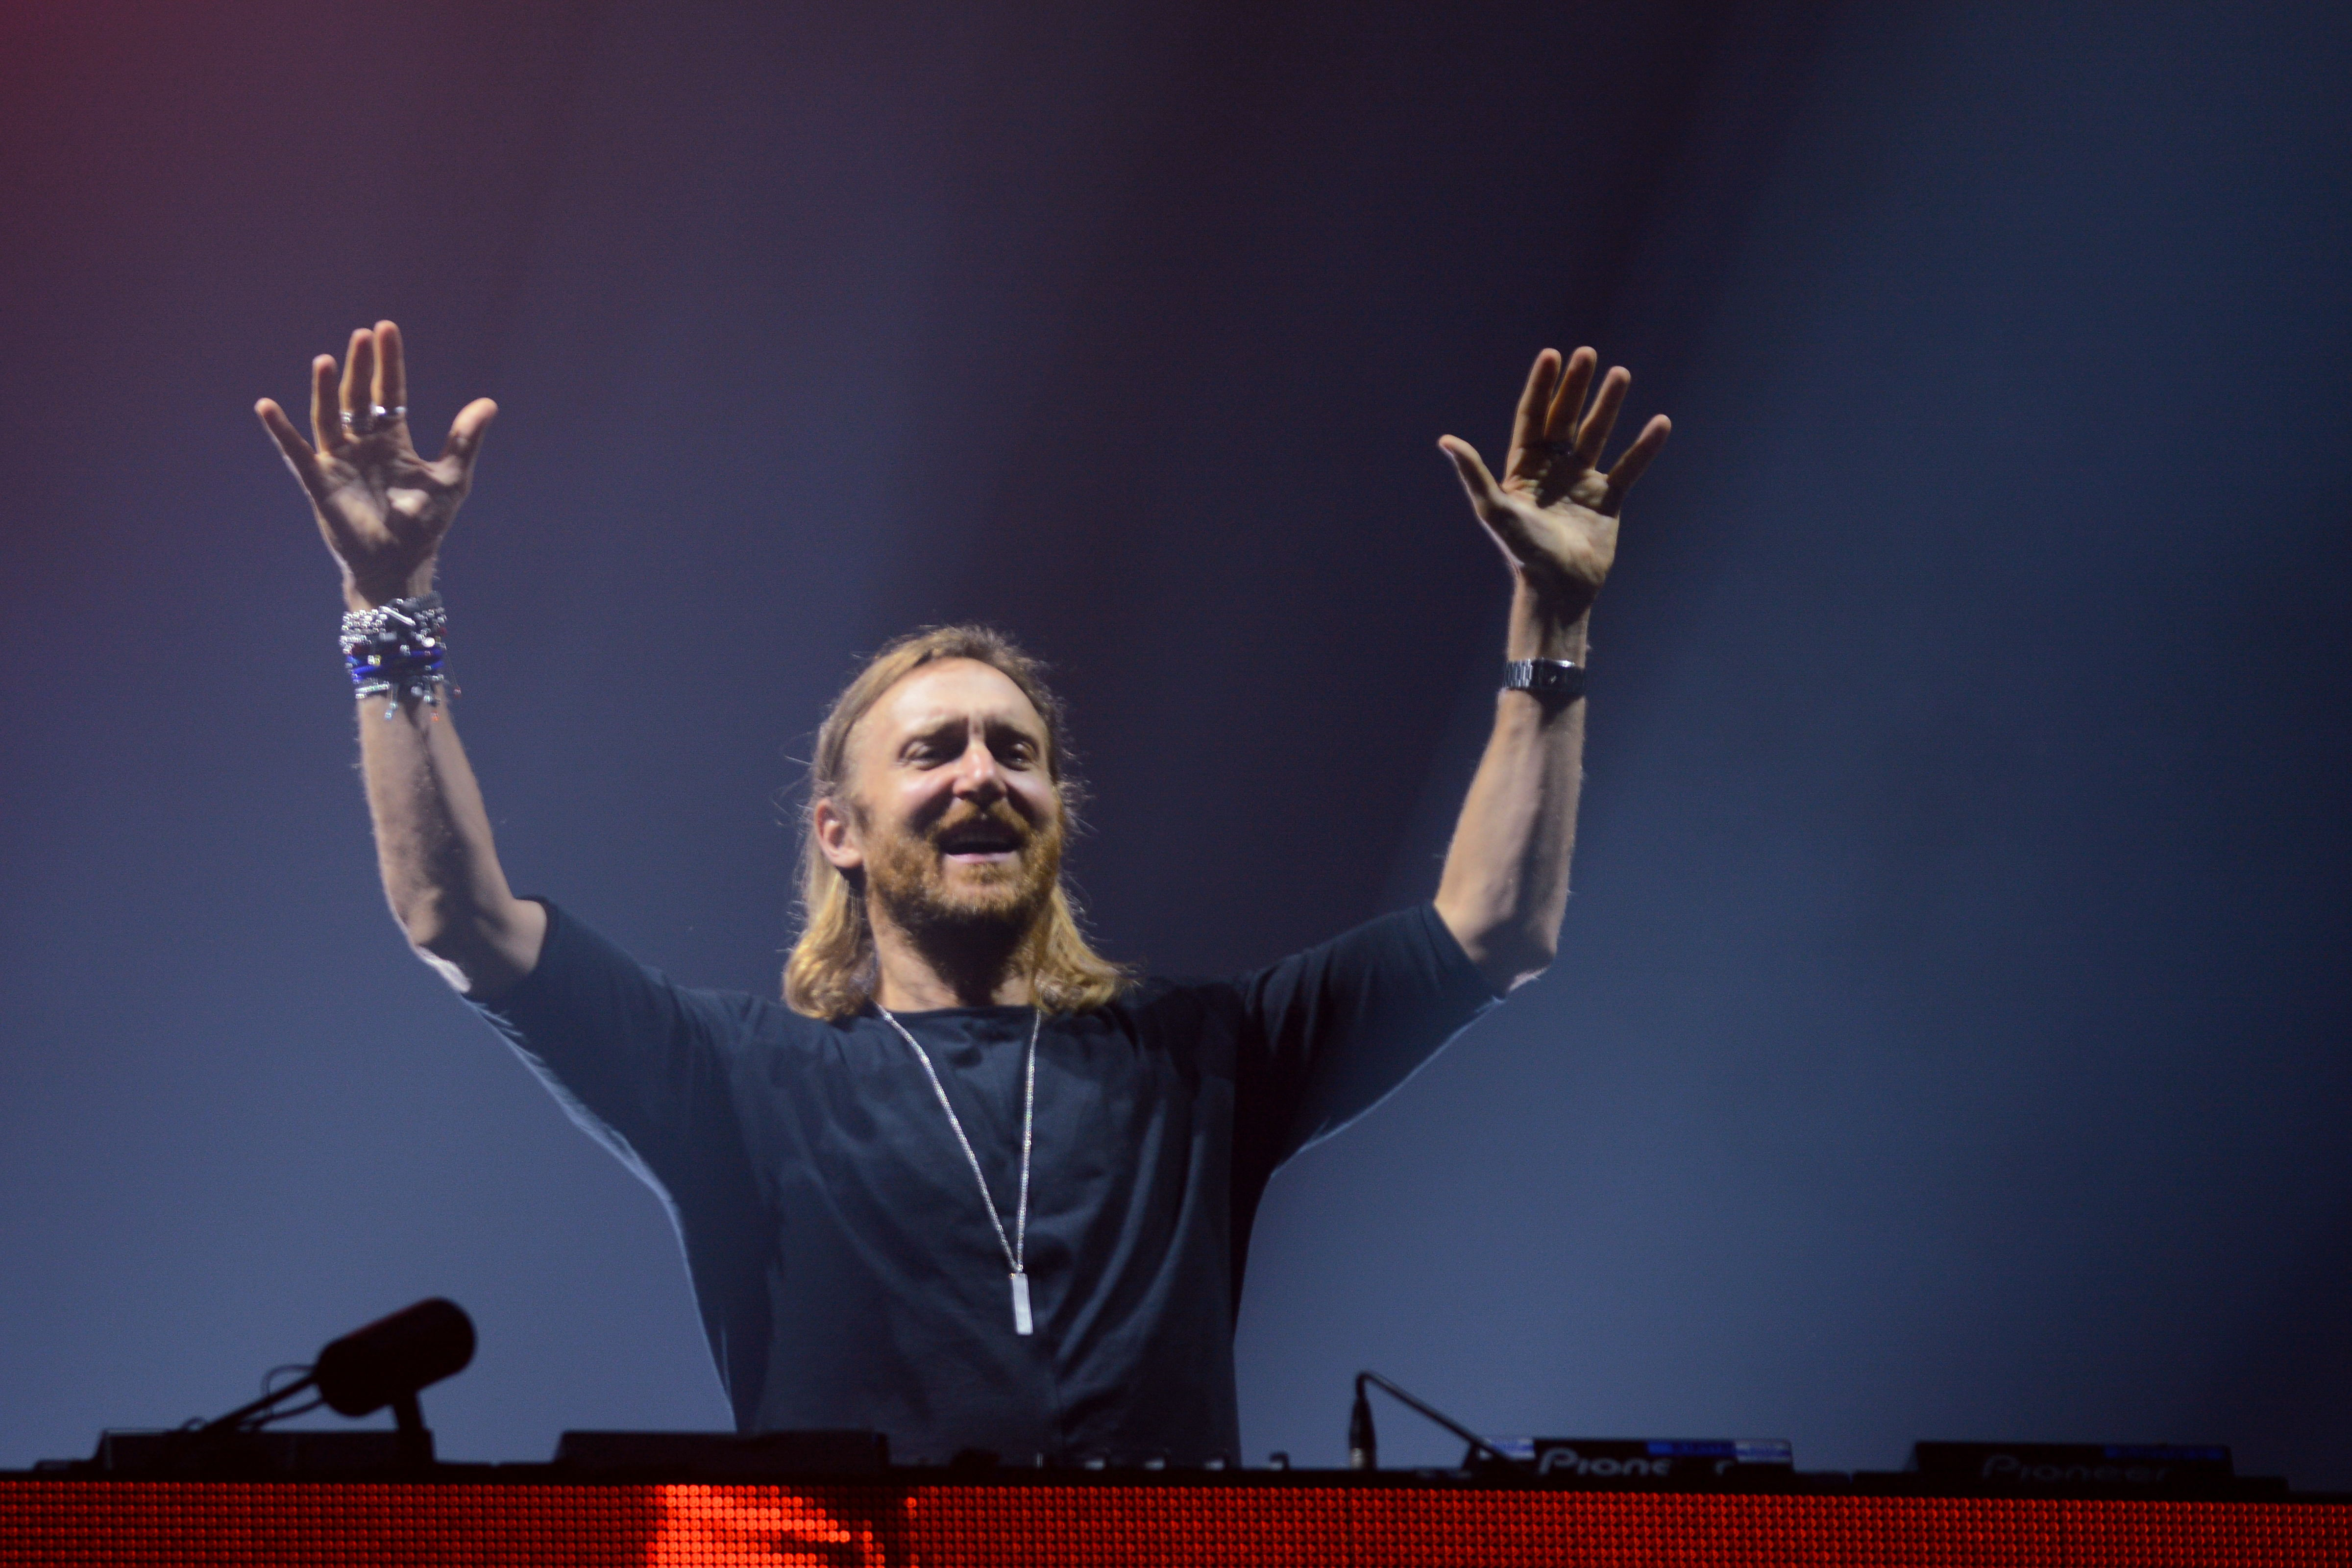 BUDAPEST, HUNGARY - AUGUST 14:  David Guetta performs on stage during day 5 of the Sziget festival on August 14, 2016 in Buda